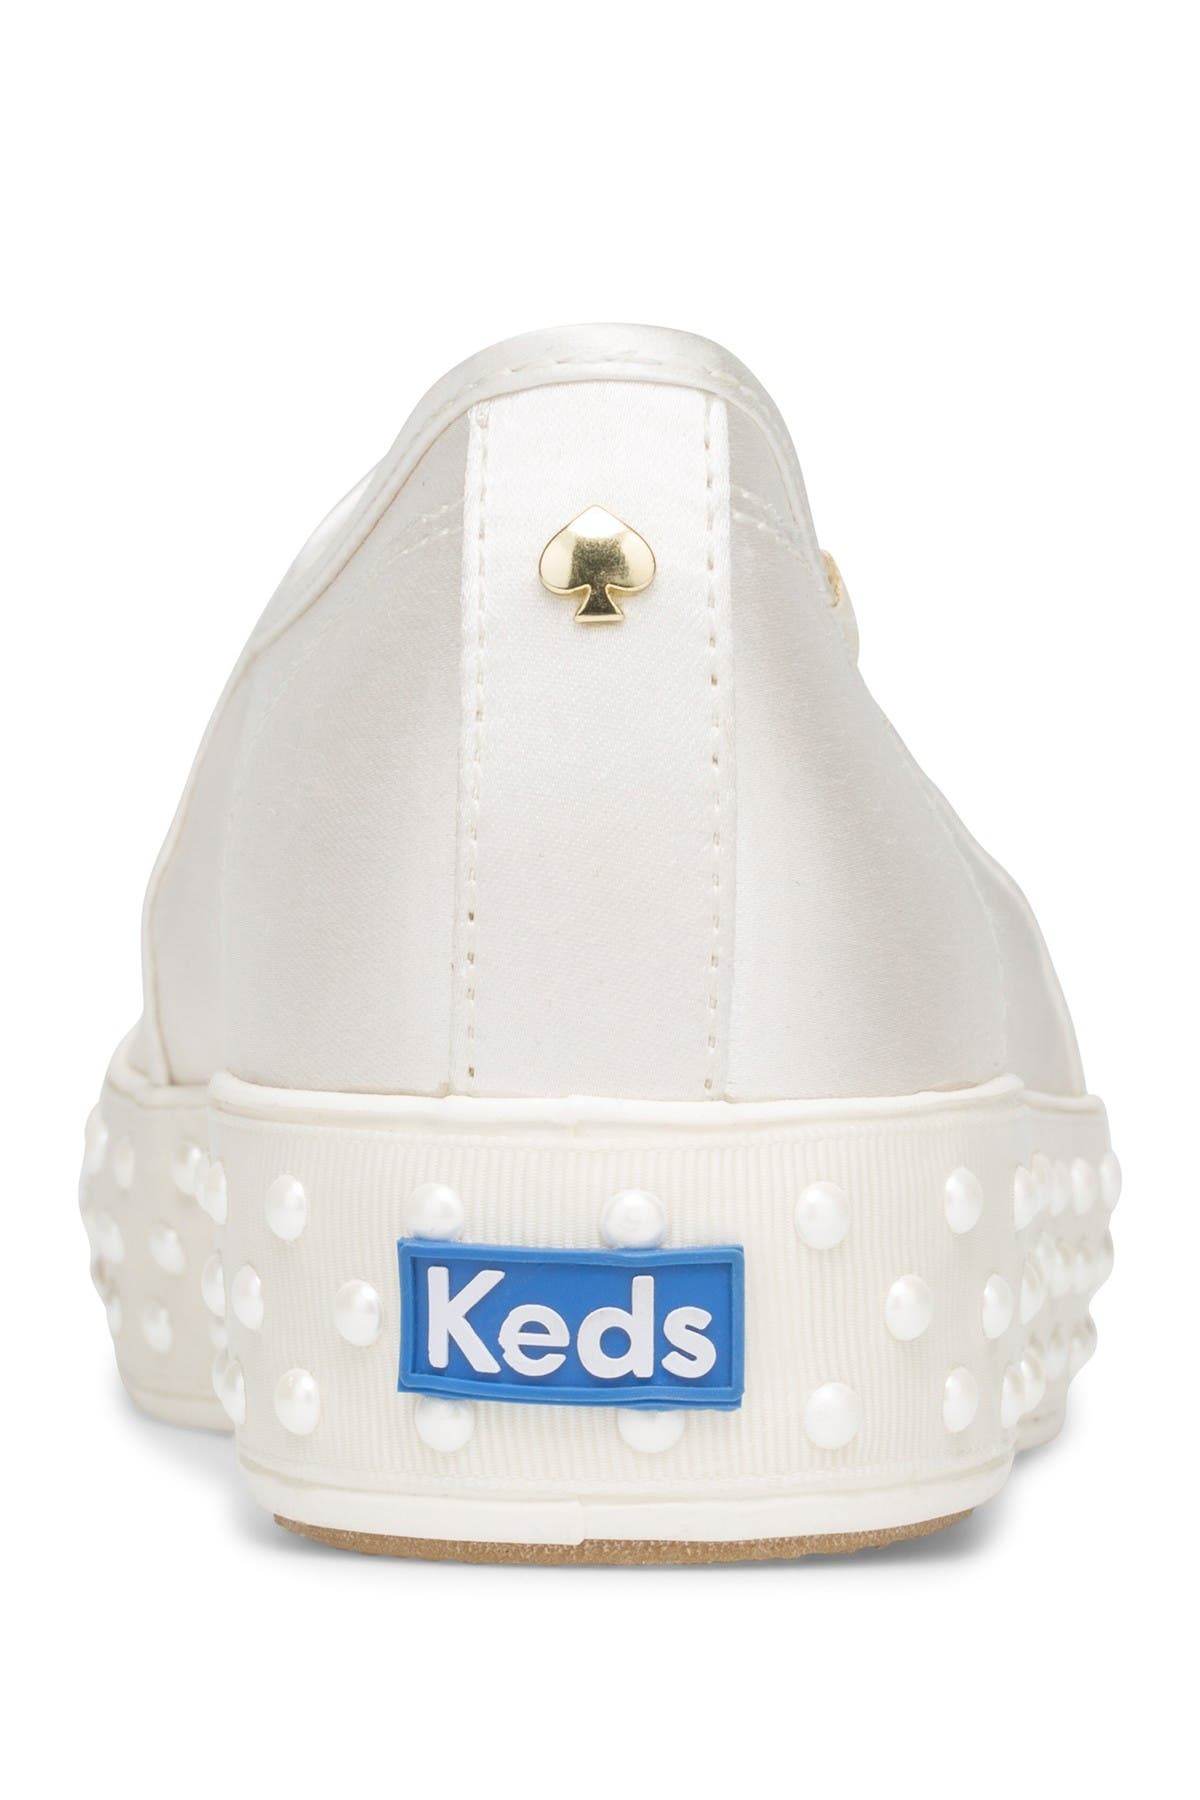 keds pearl shoes